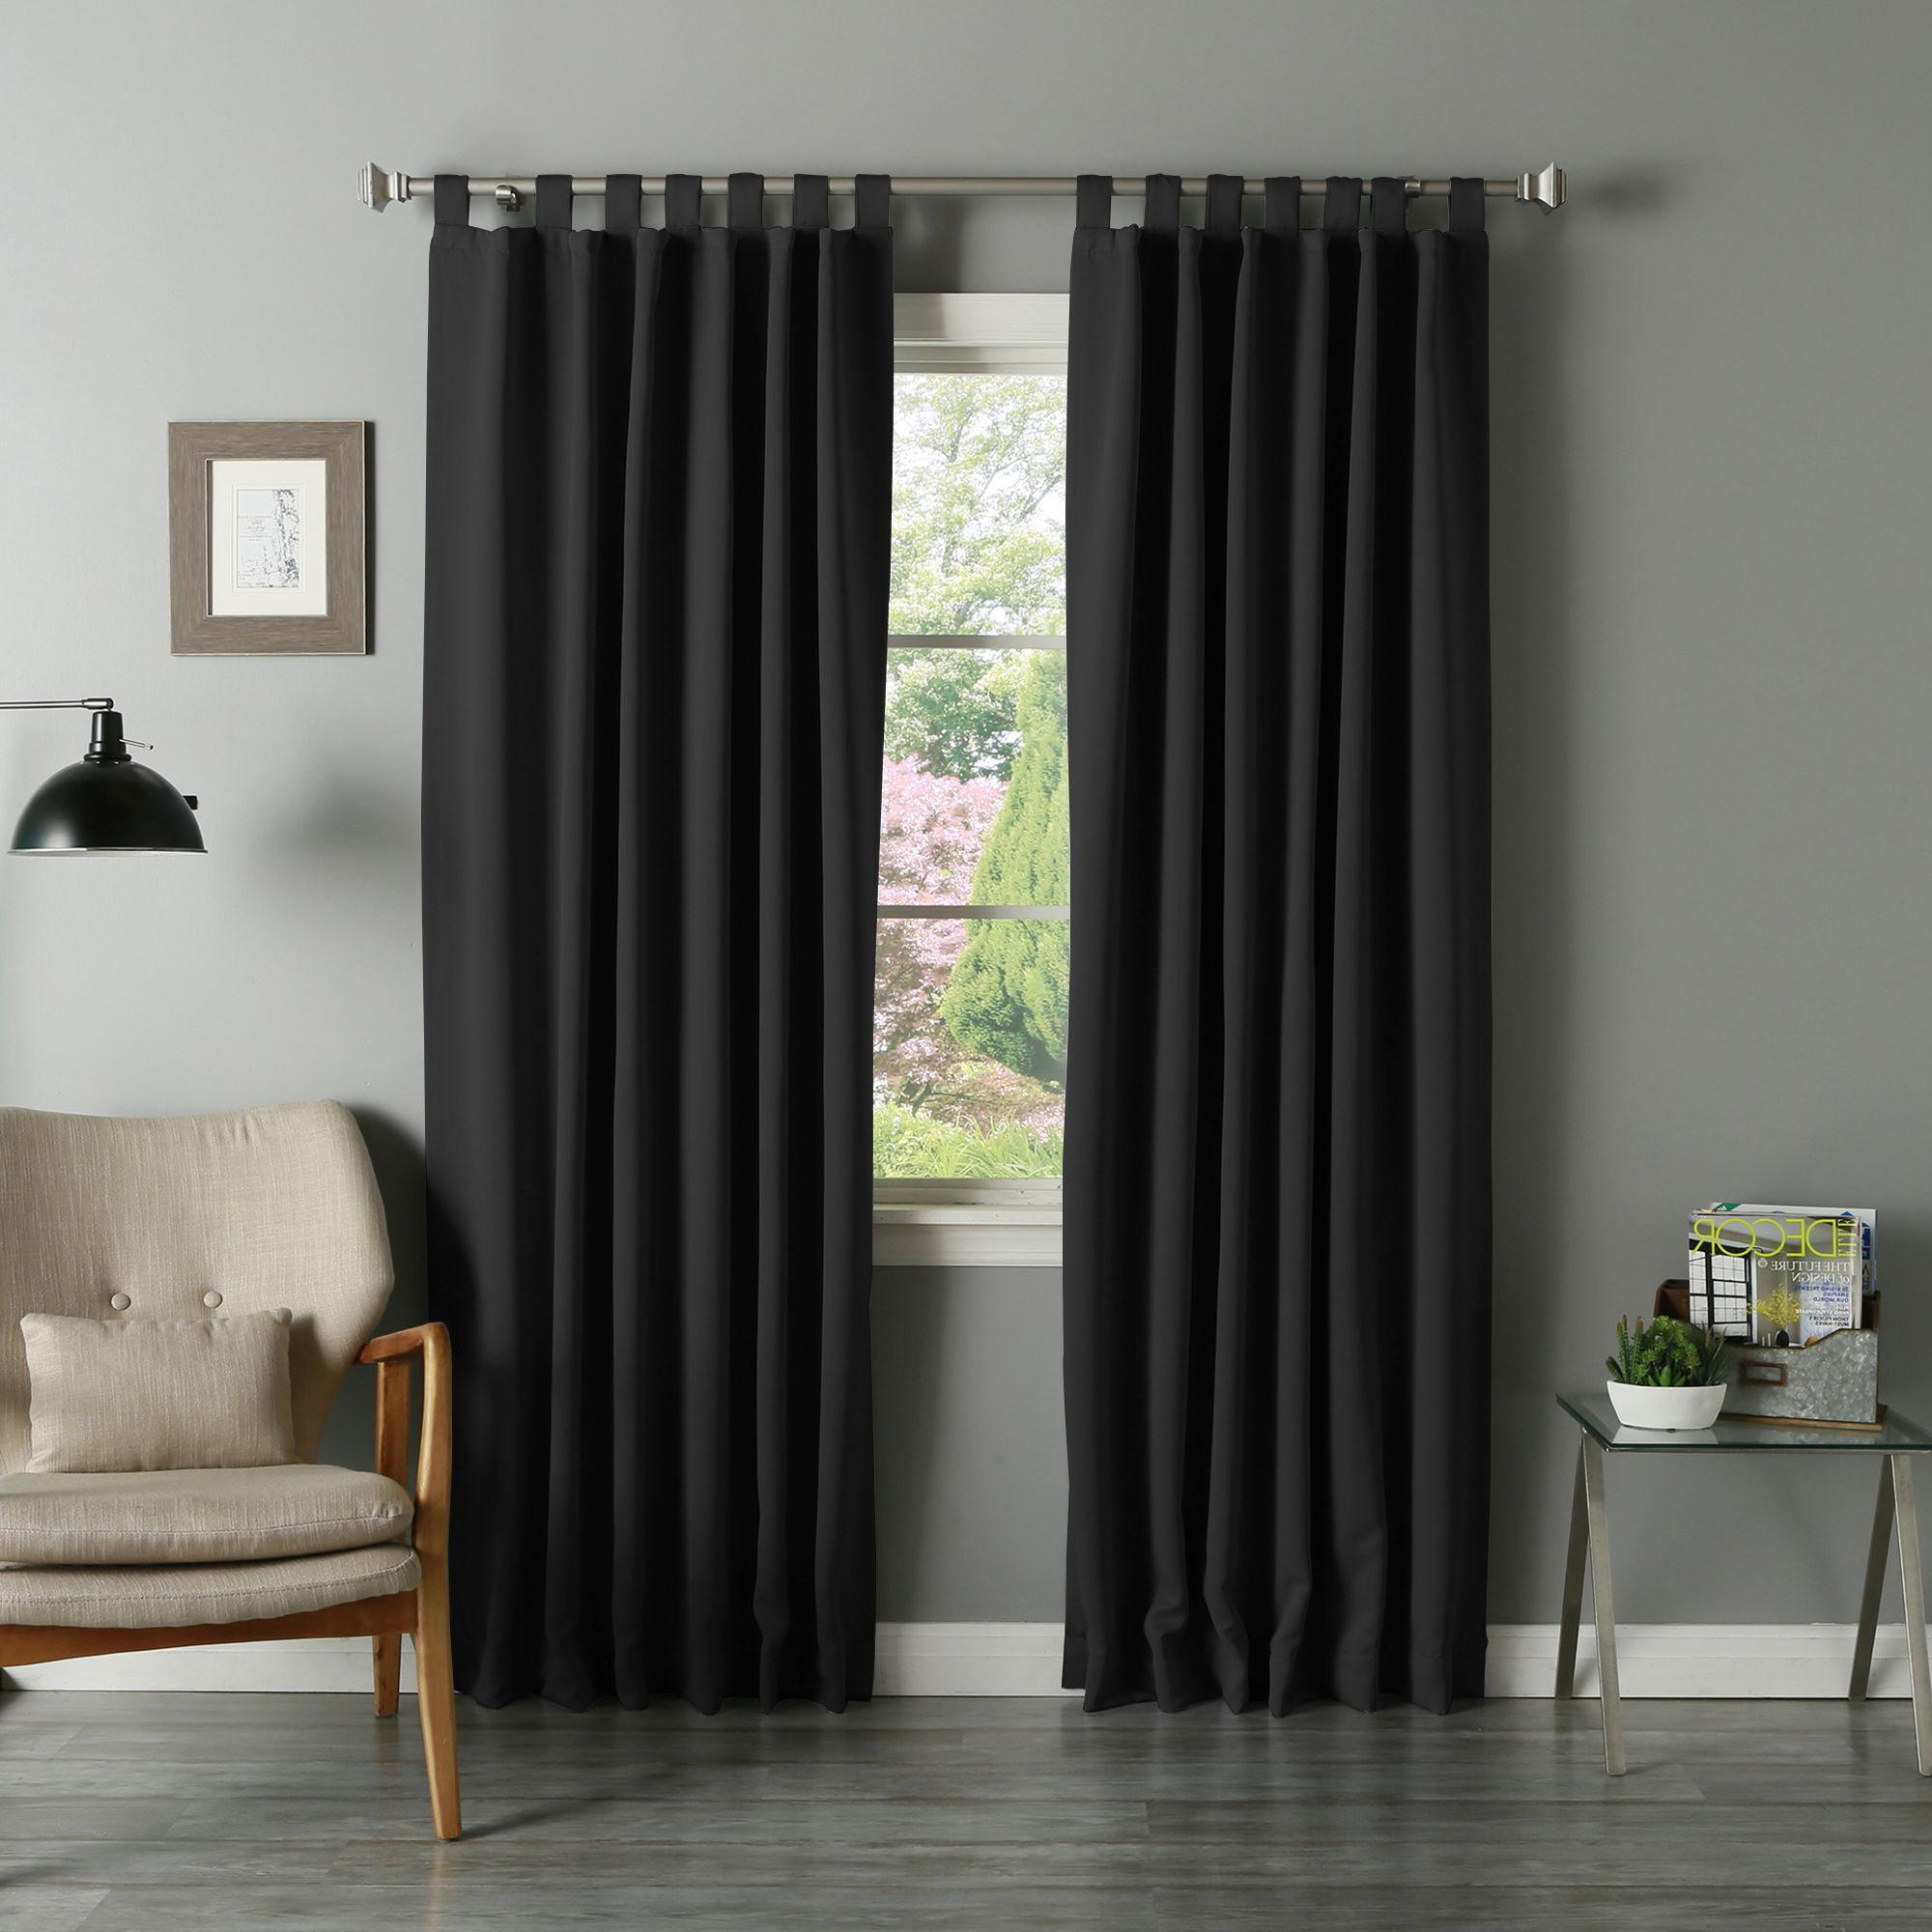 Widely Used Solid Thermal Insulated Blackout Curtain Panel Pairs Intended For Aurora Home Tab Top Thermal Insulated 95 Inch Blackout (View 6 of 20)